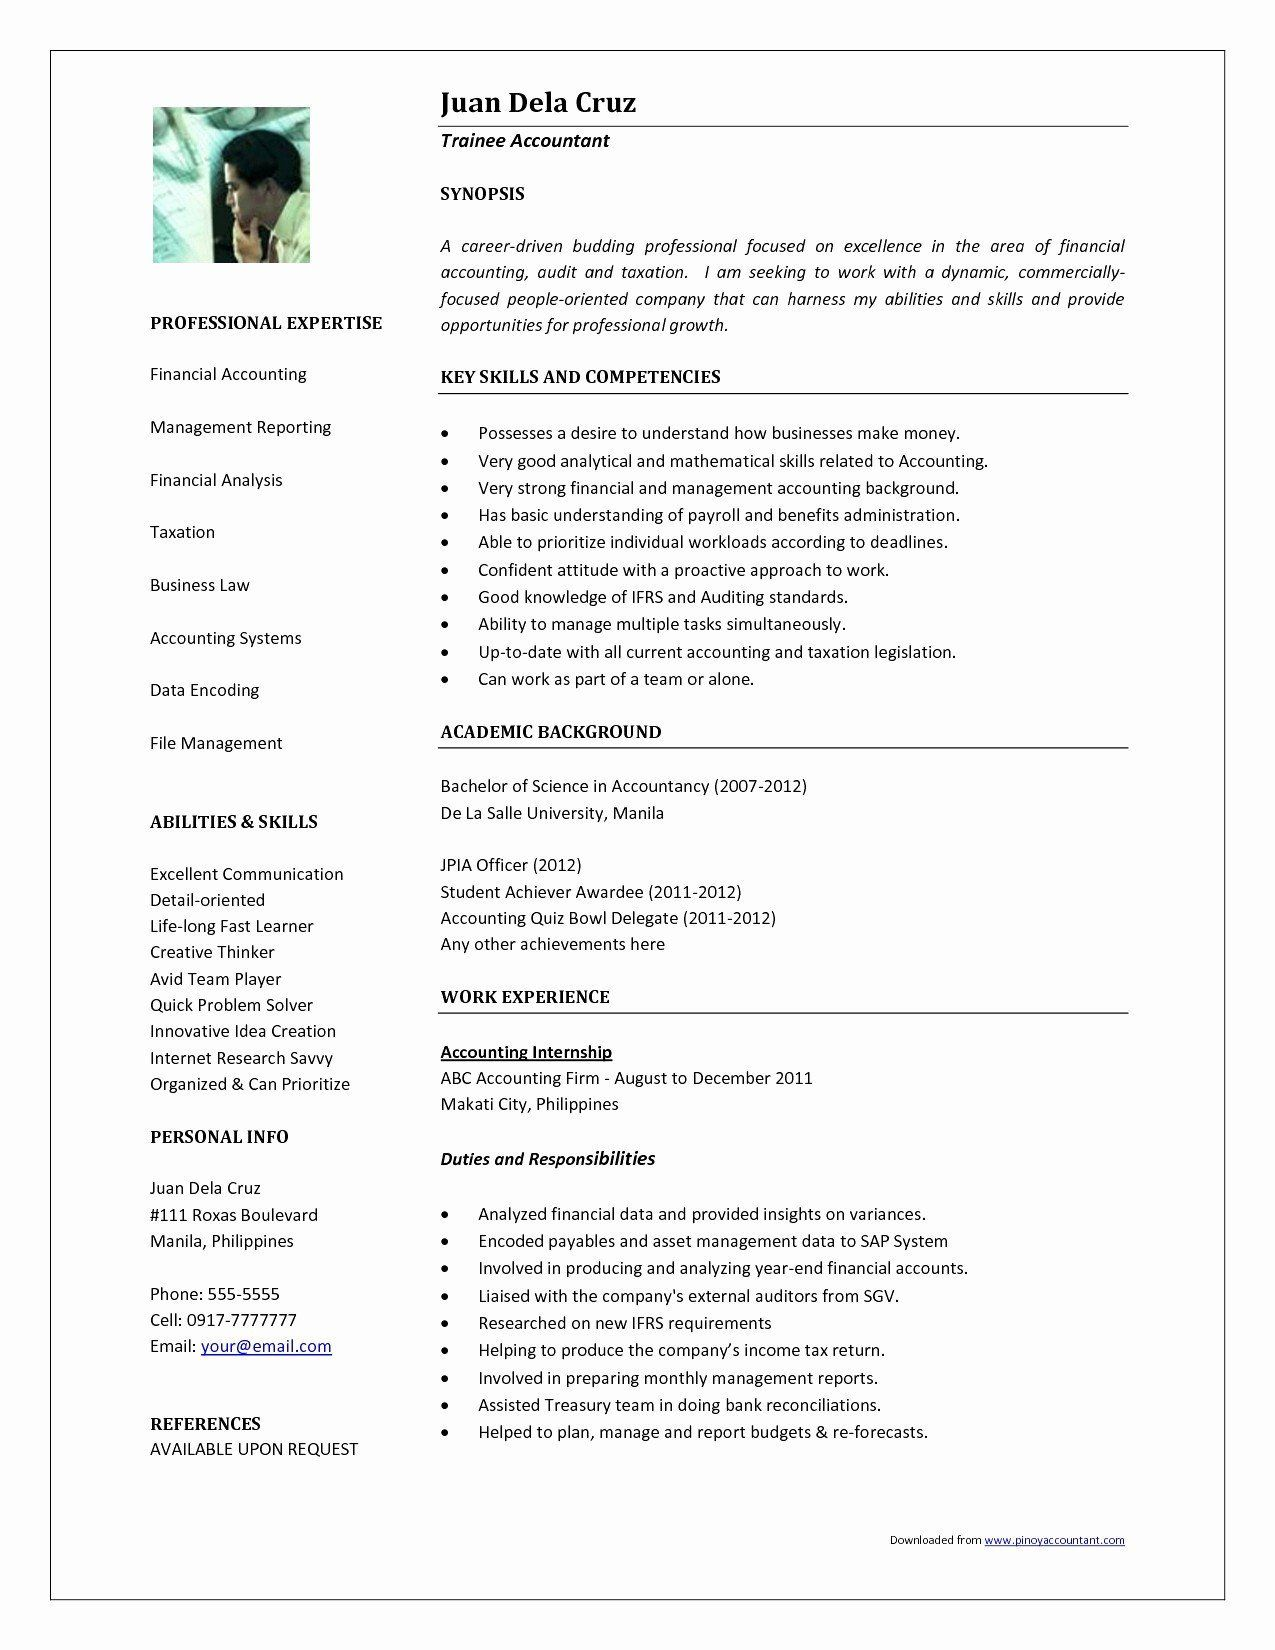 Skills For Accounting Resume Luxury Dynamic Resume Templates Best Restaurant Resume Sample Accountant Resume Business Letter Template Business Plan Template